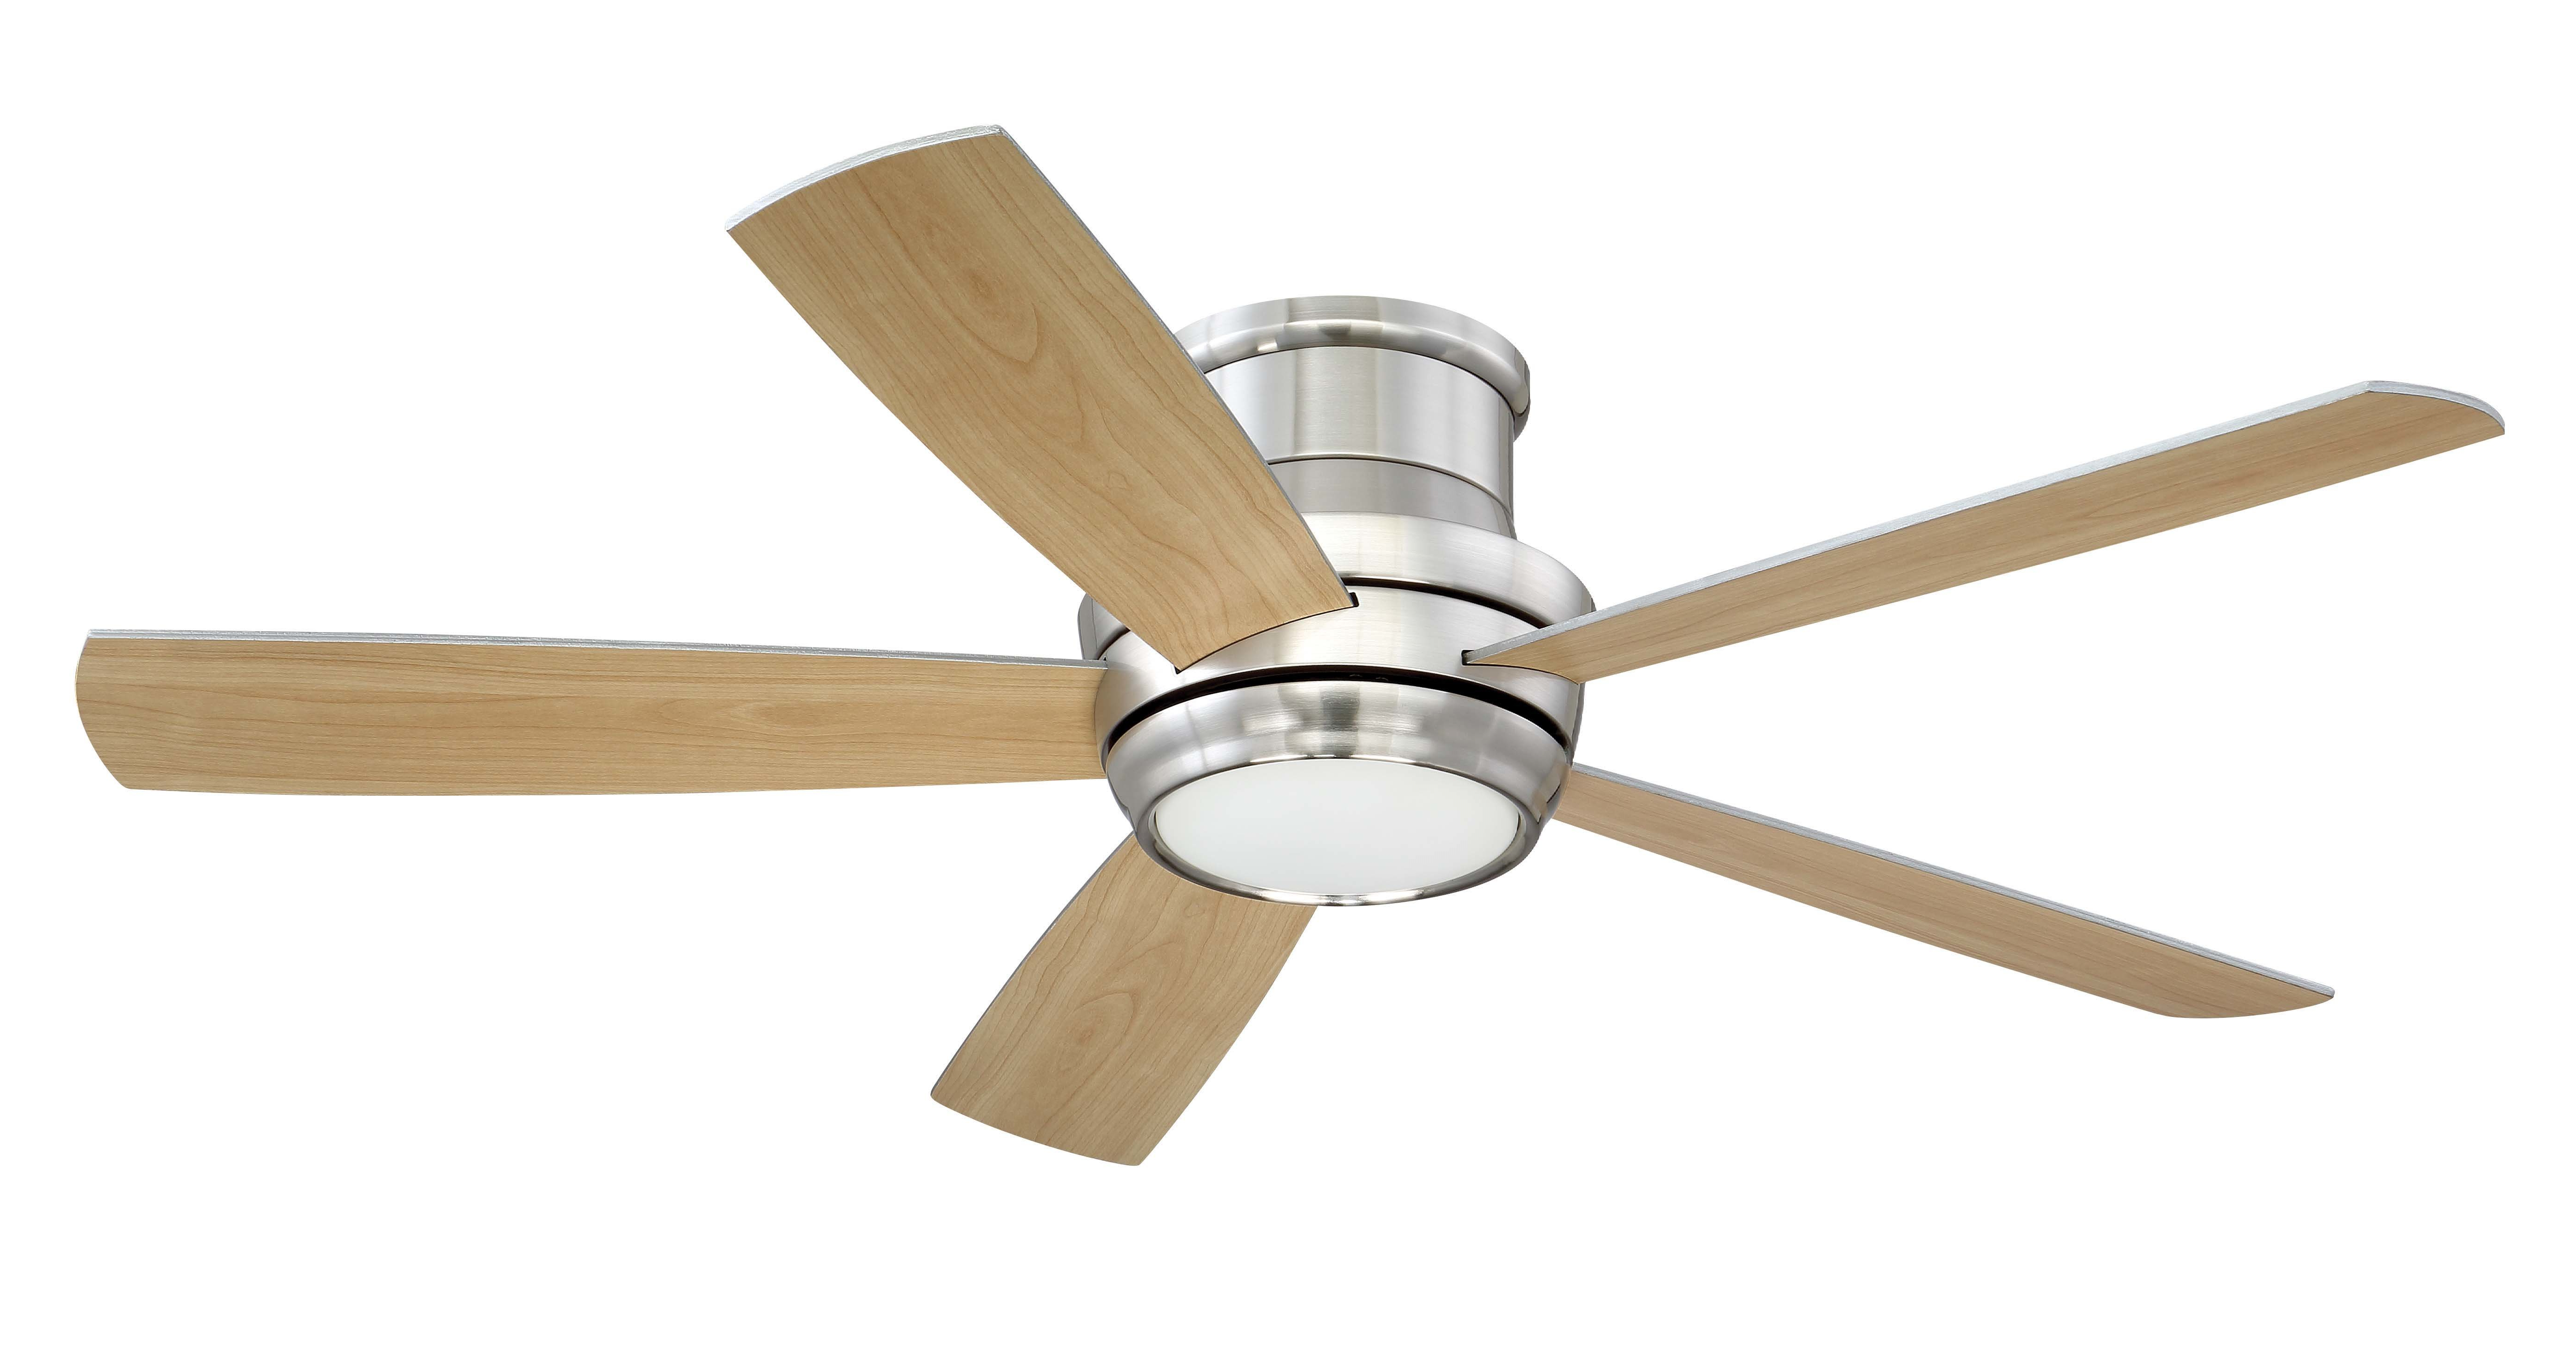 """52"""" Cedarton 5 Blade Led Ceiling Fan With Remote, Light Kit Included Inside Widely Used The Kensington 5 Blade Ceiling Fans (View 12 of 20)"""